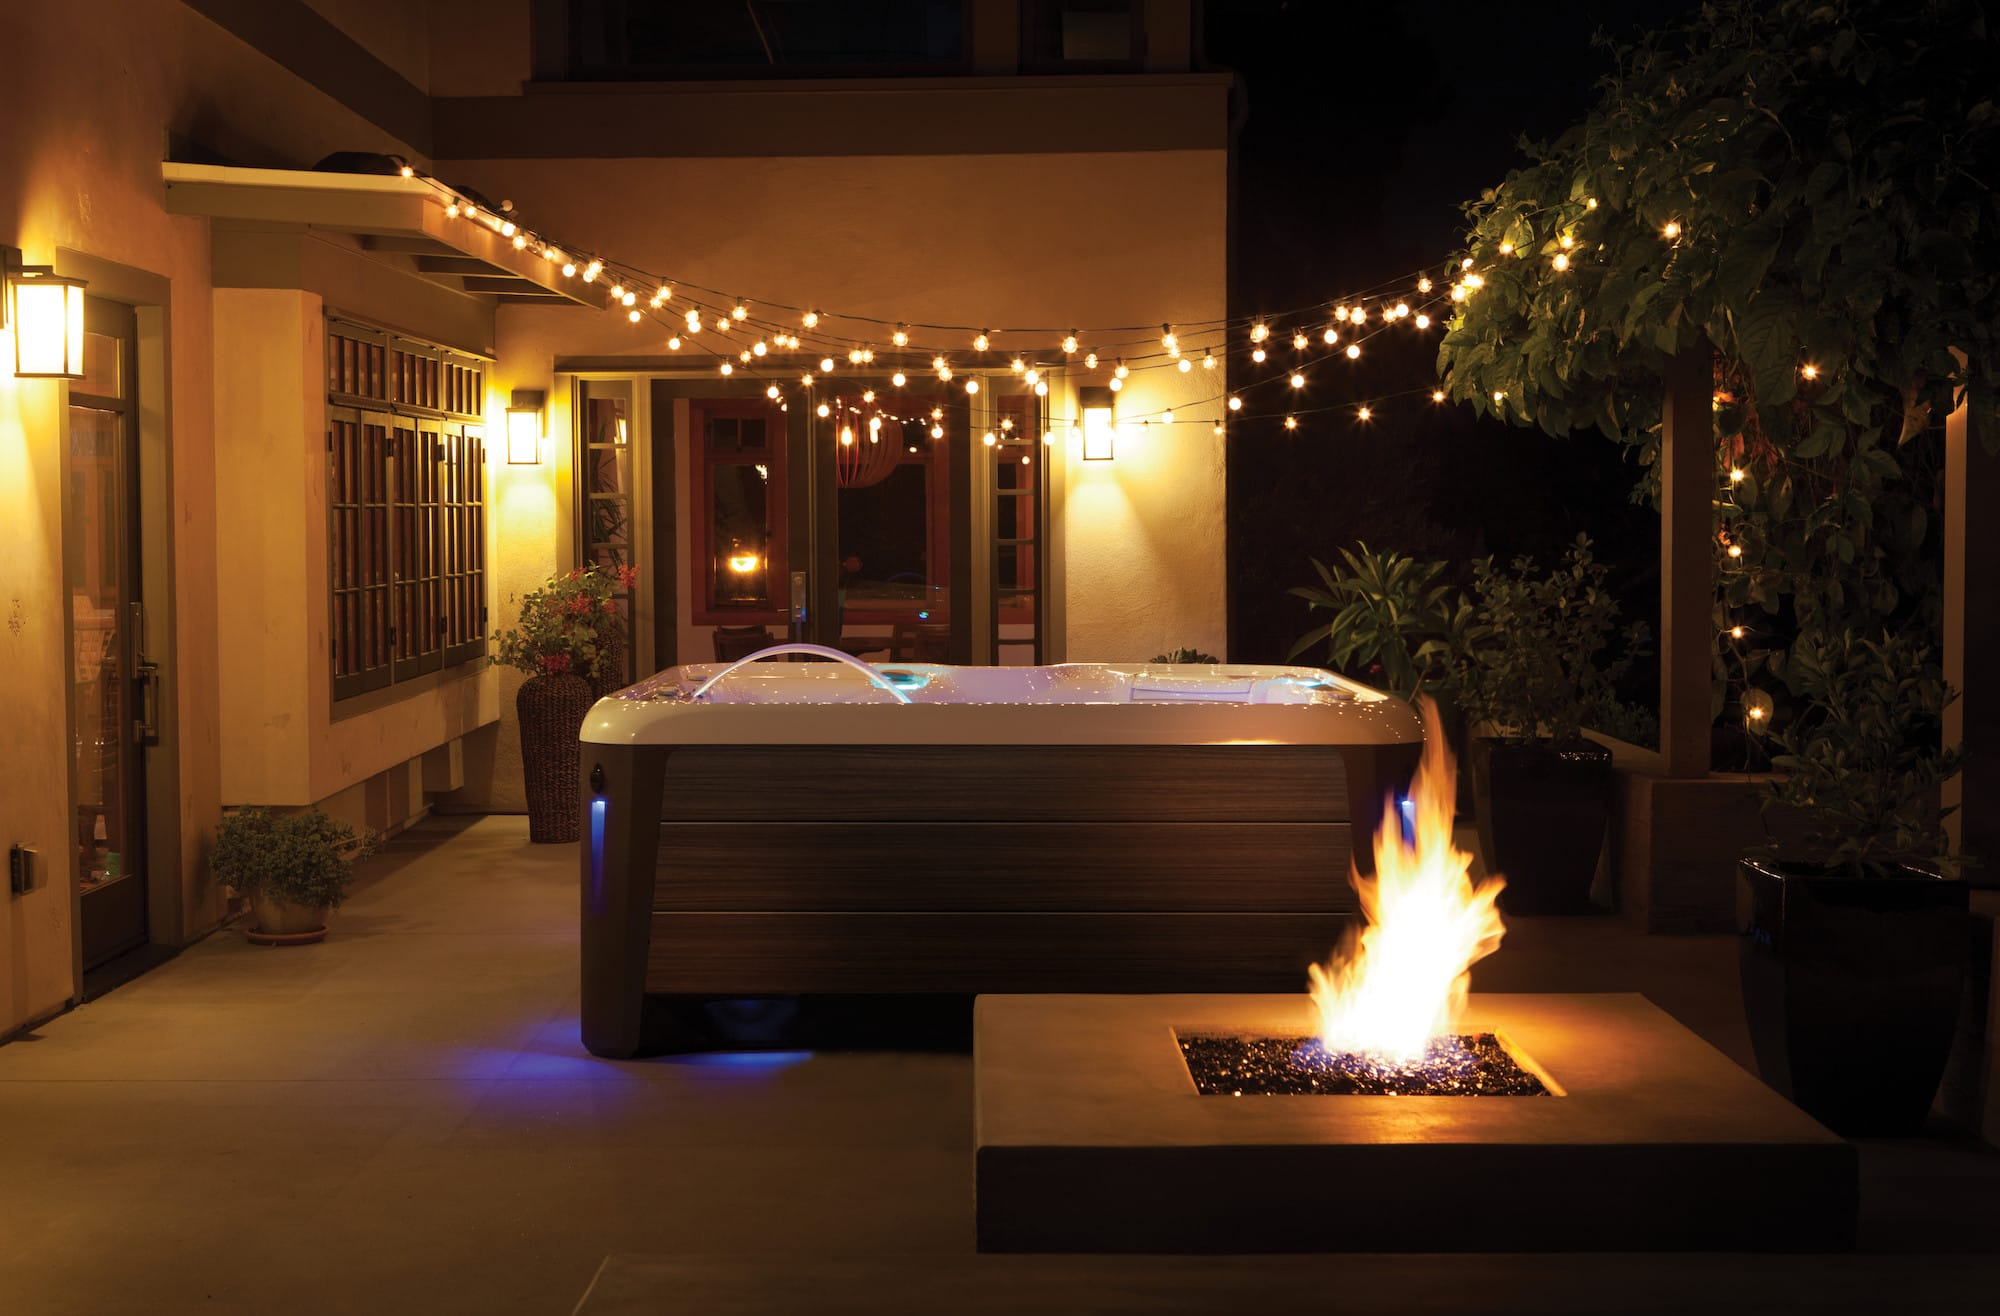 Hot Spring Spas Aria Hot Tub at Lifestyle Outdoor in Los Angeles, California